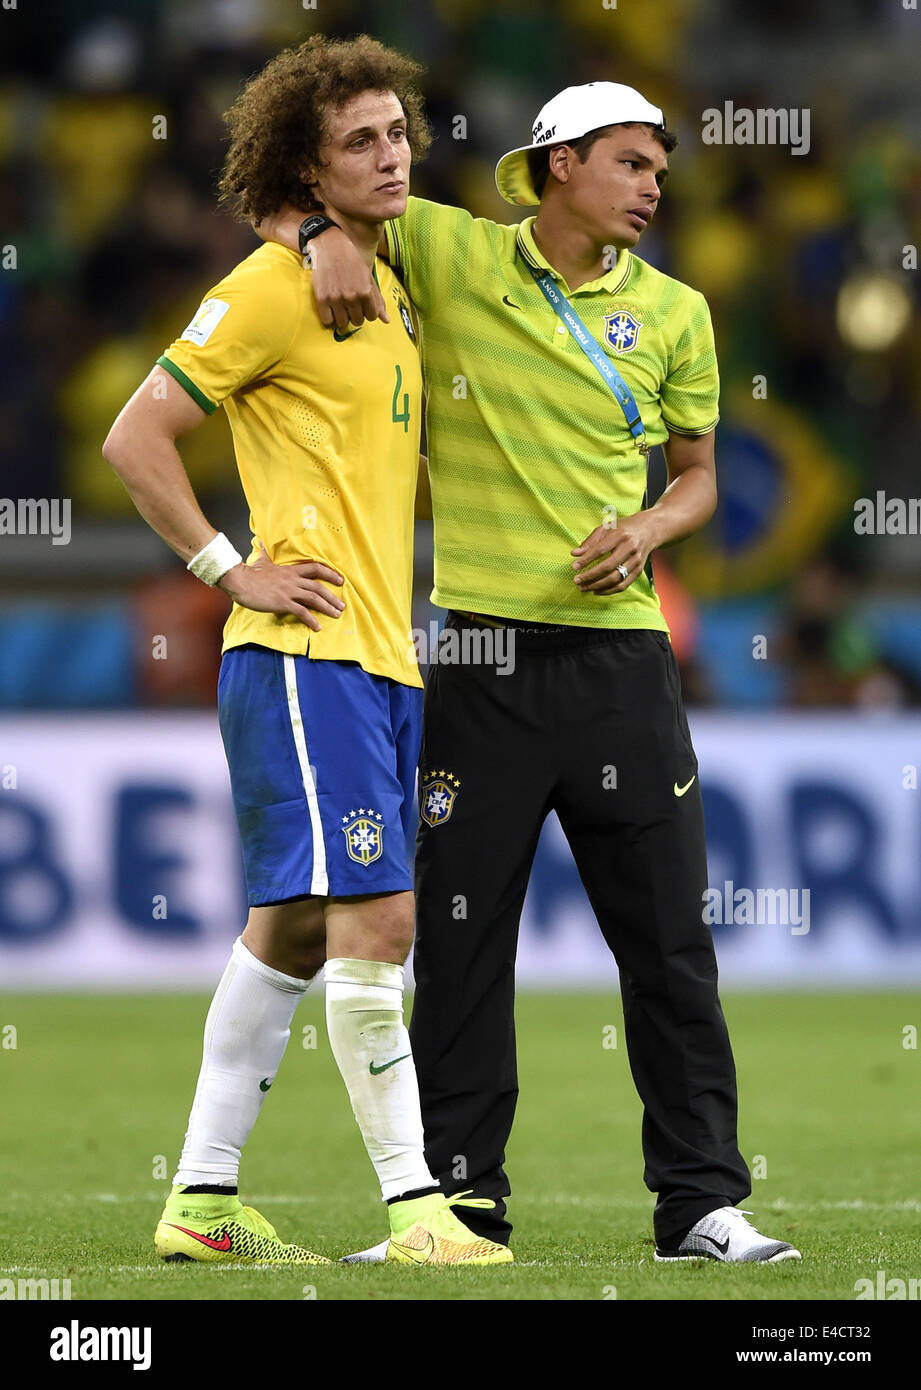 Belo Horizonte, Brazil. 8th July, 2014. Brazil's David Luiz (L) is consoled by Thiago Silva after a semifinal - Stock Image